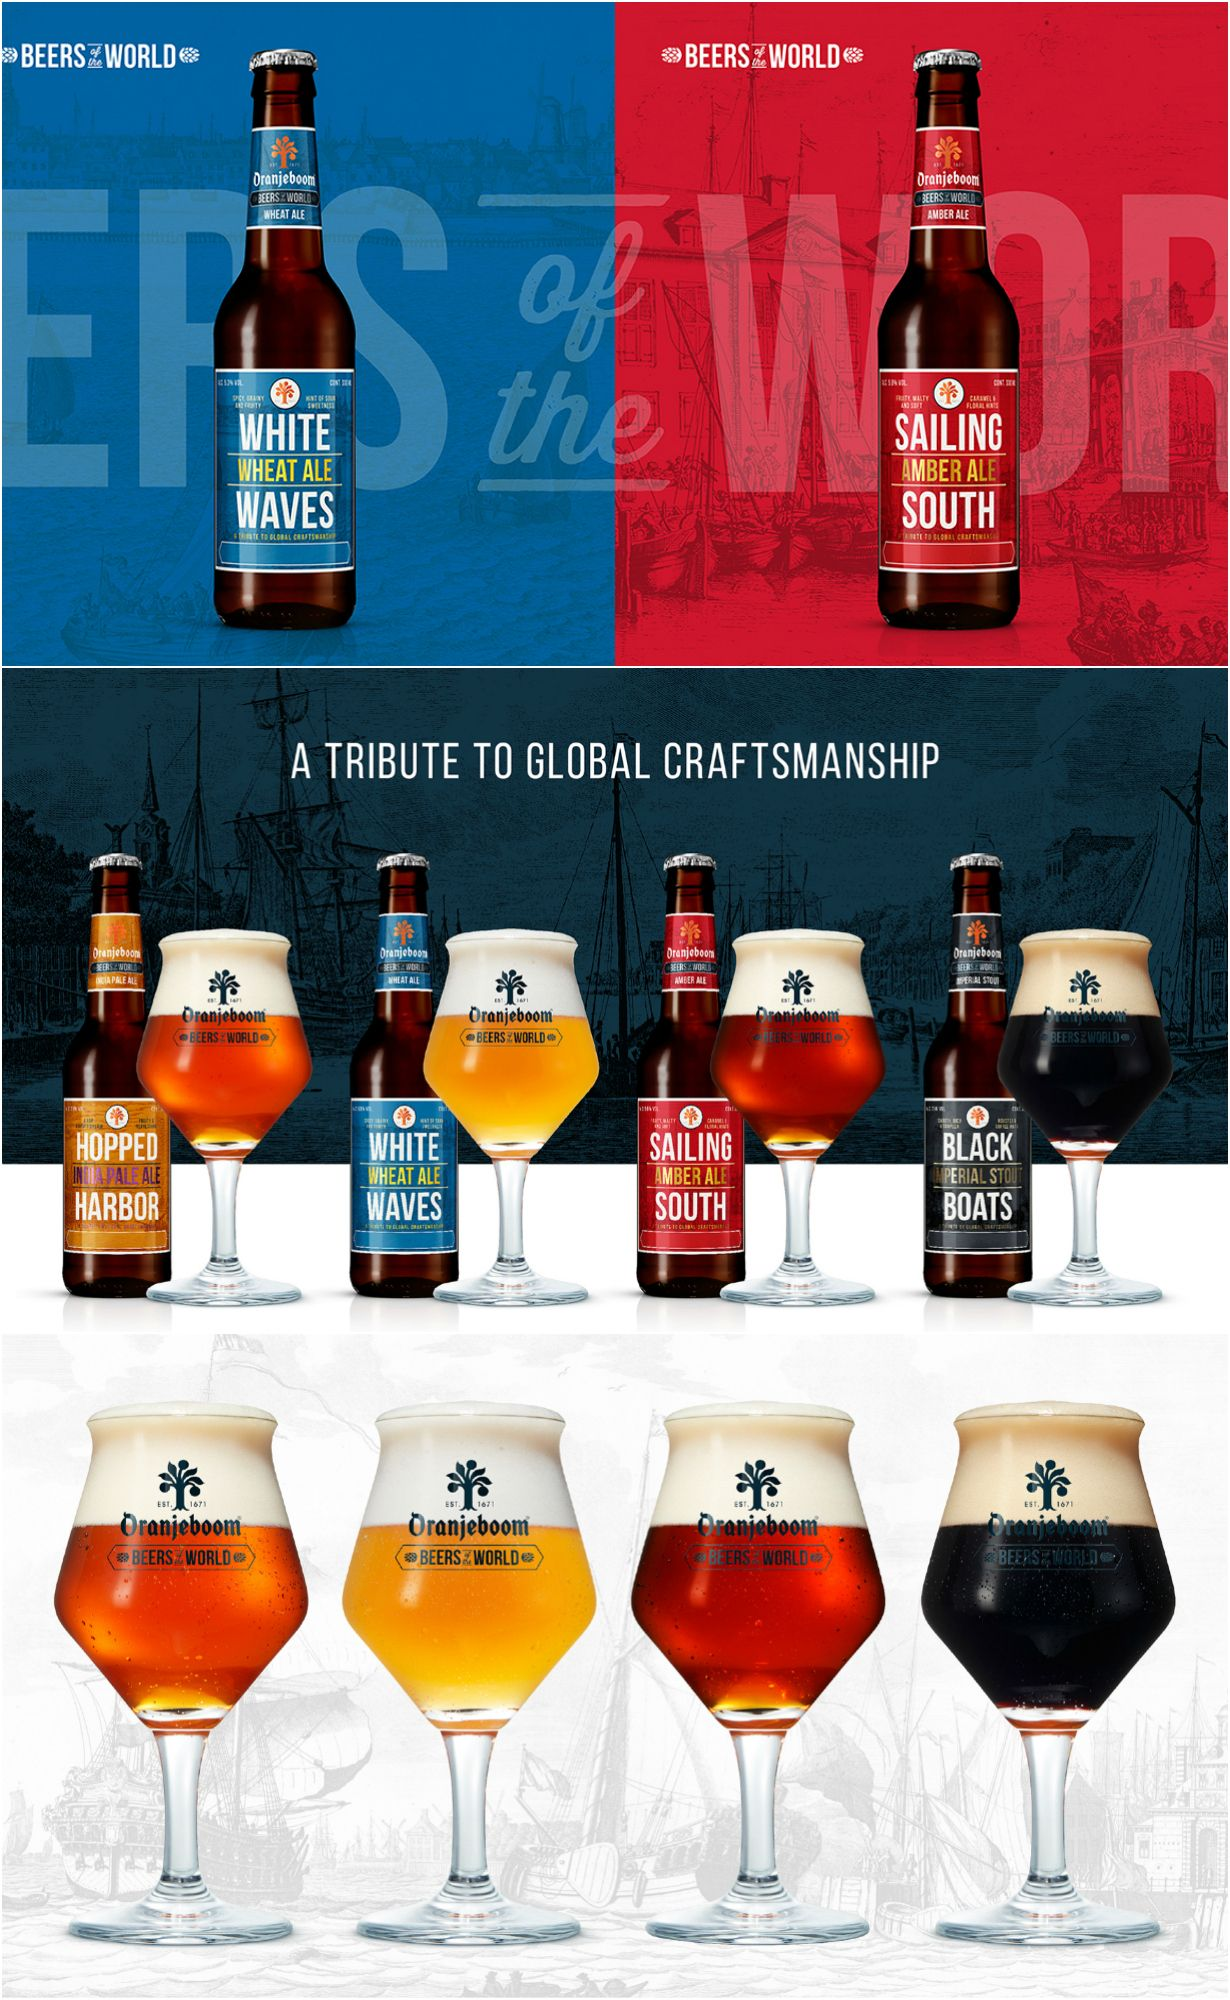 Oranjeboom Beers Of The World A Tribute To Global Craftsmanship Beers Of The World Drinks Packaging Design Beer